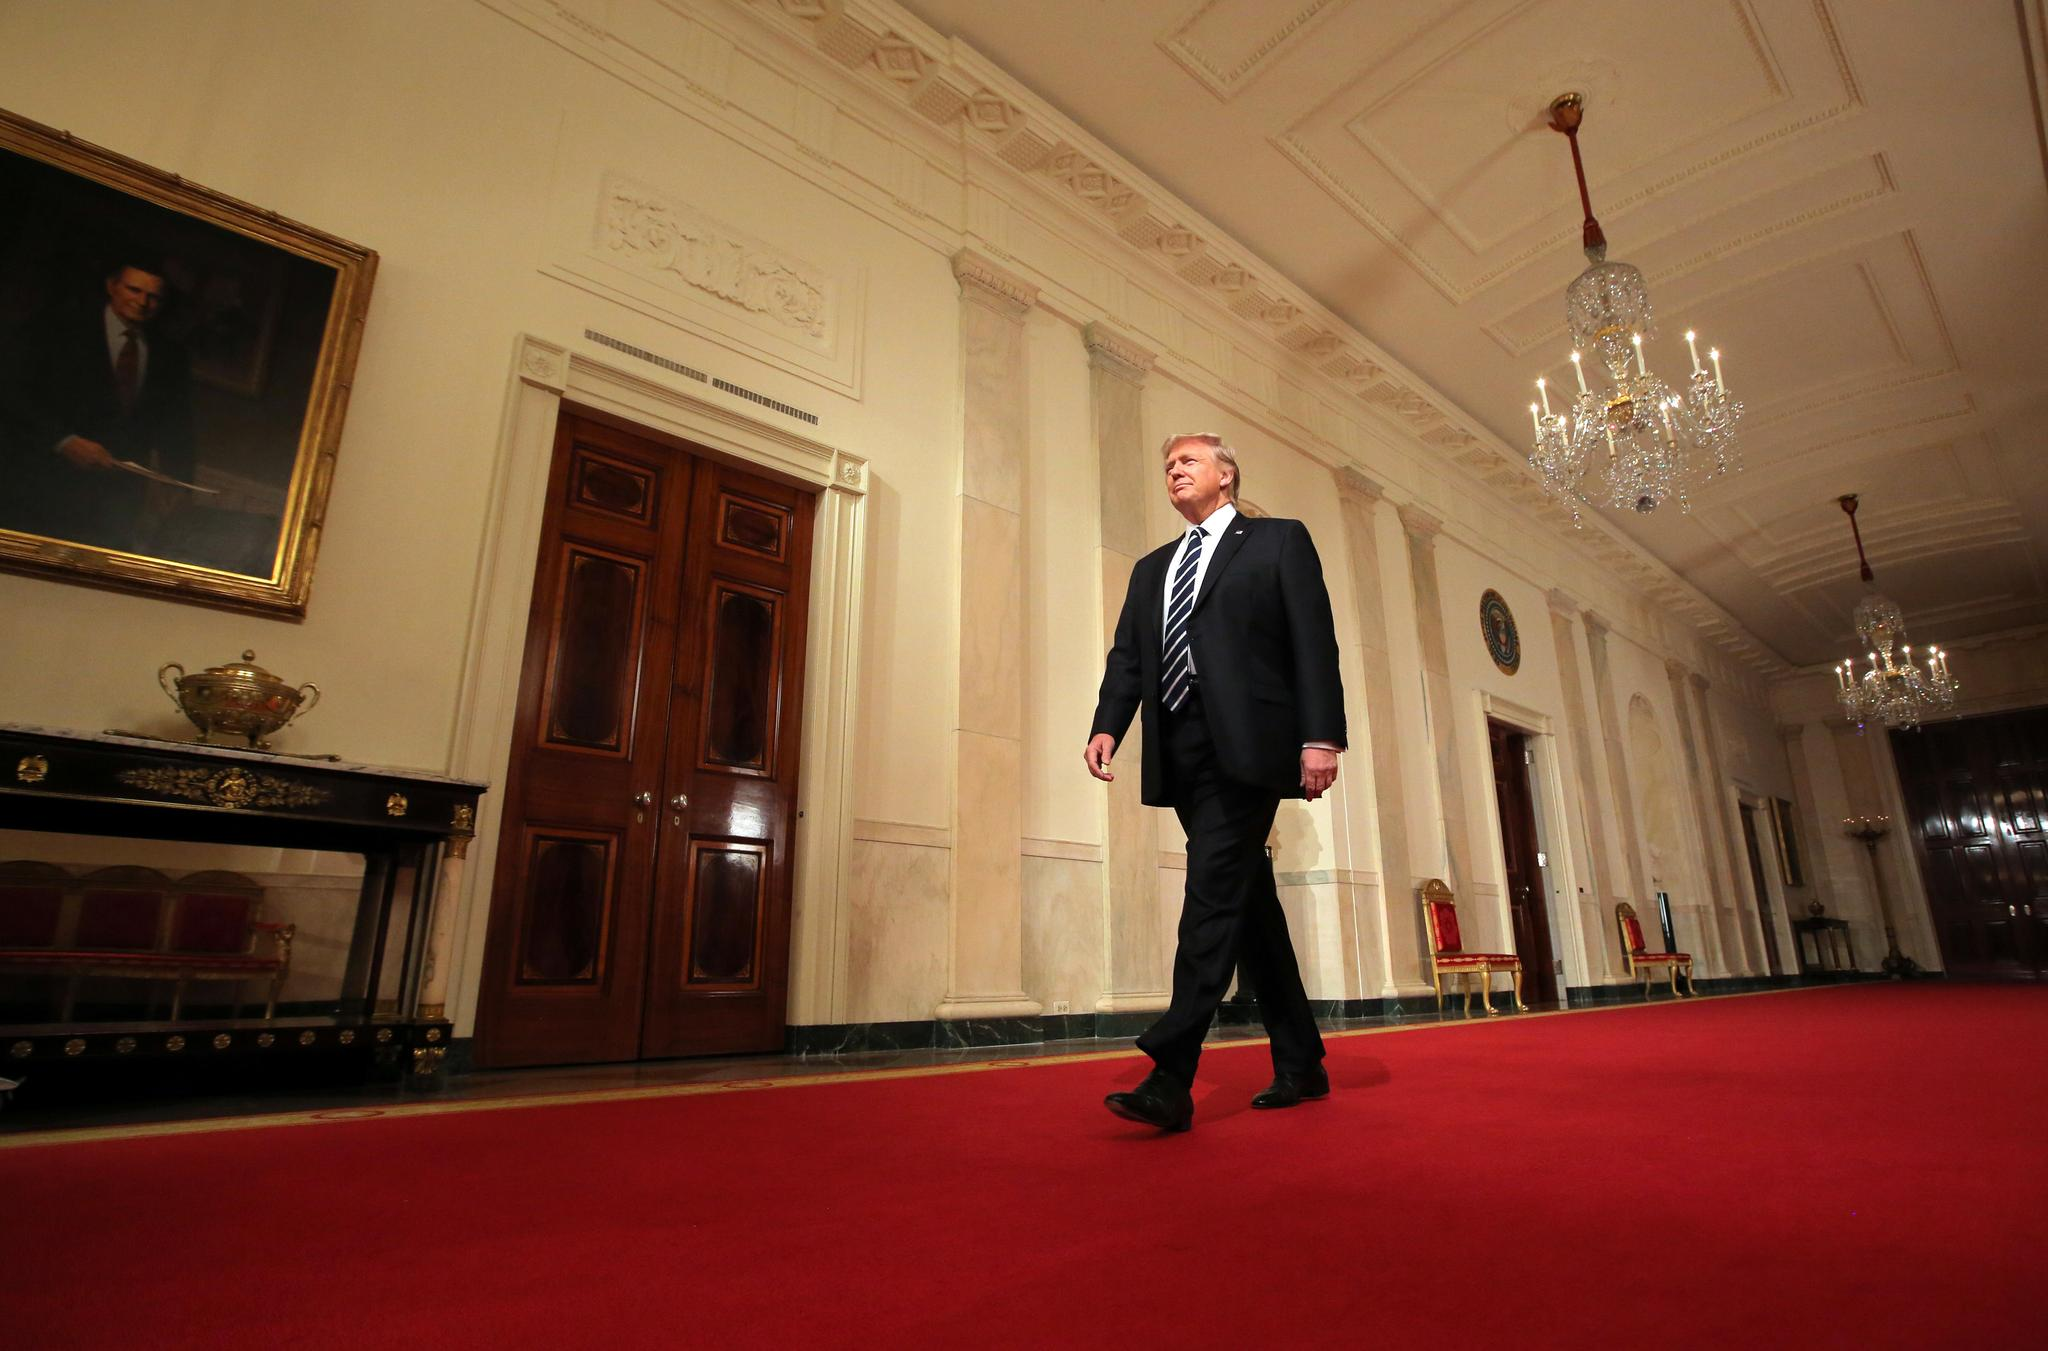 President Donald Trump at the White House in Washington, D.C., on January 31.